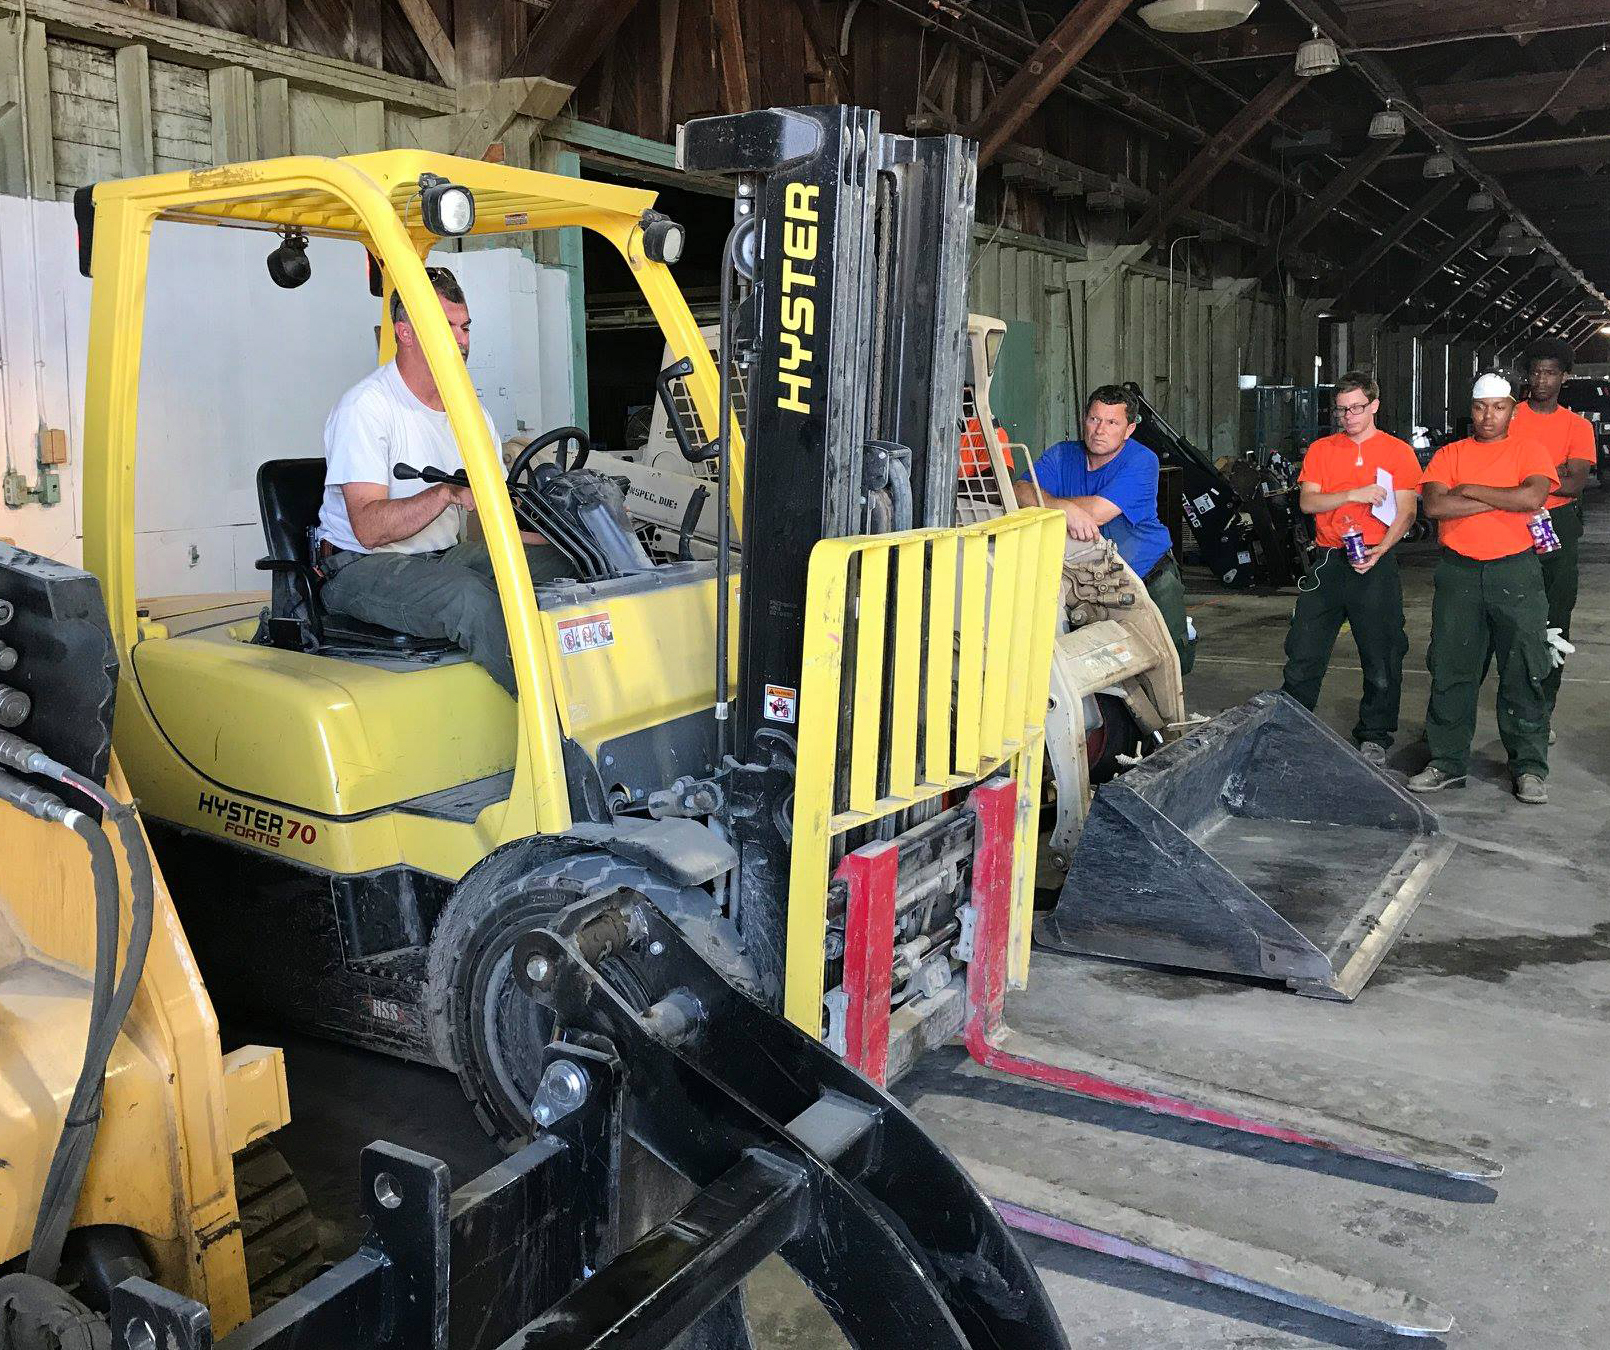 Photo: One student sits in a forklift while other students, trainer, look on.